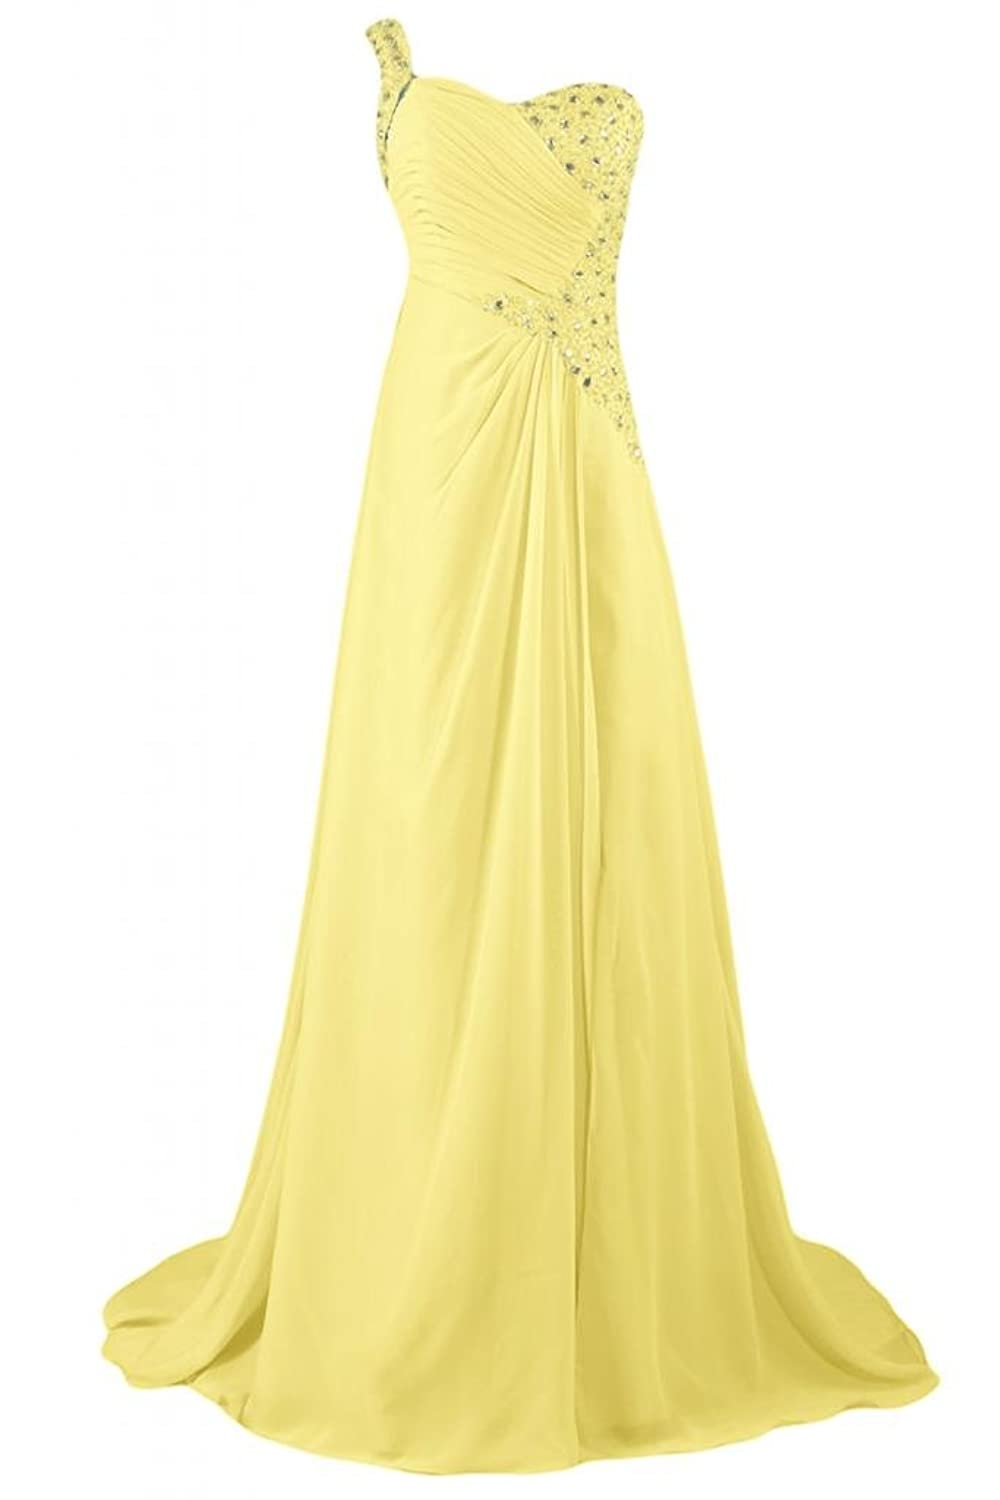 Sunvary Graceful One-shoulder Neckline Long Evening Dresses Maxi Party Bridesmaid Gowns Evening Dress